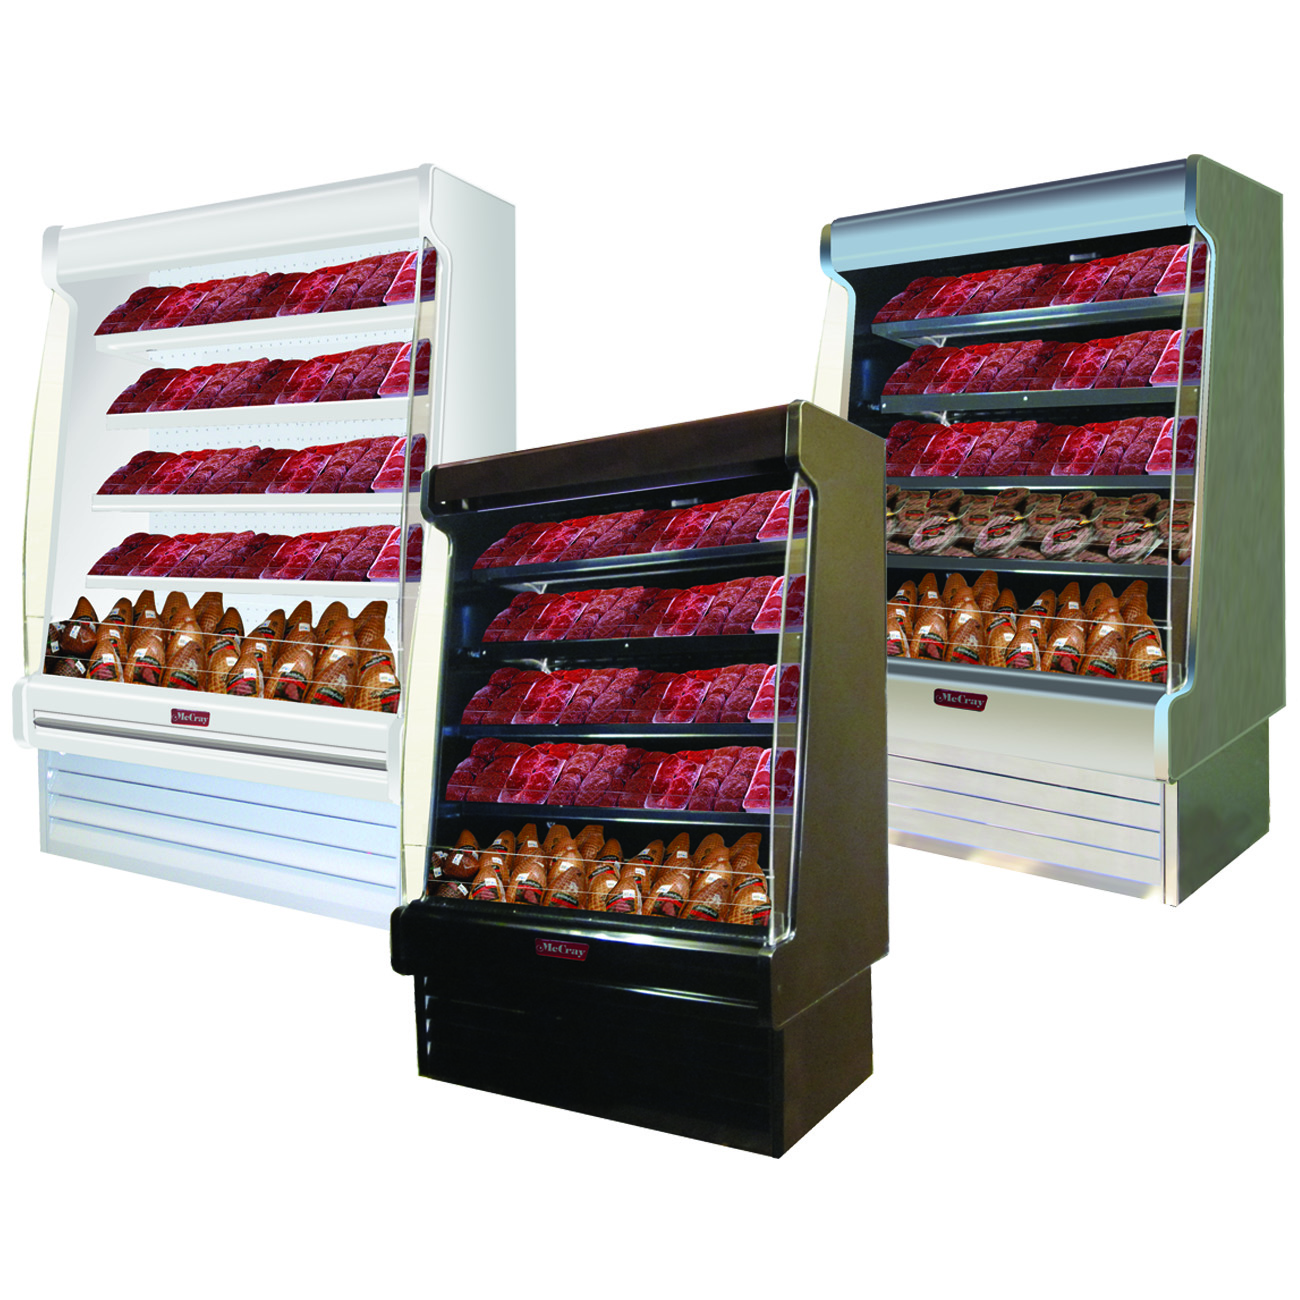 Howard-McCray R-OM35E-3S-B-LED merchandiser, open refrigerated display